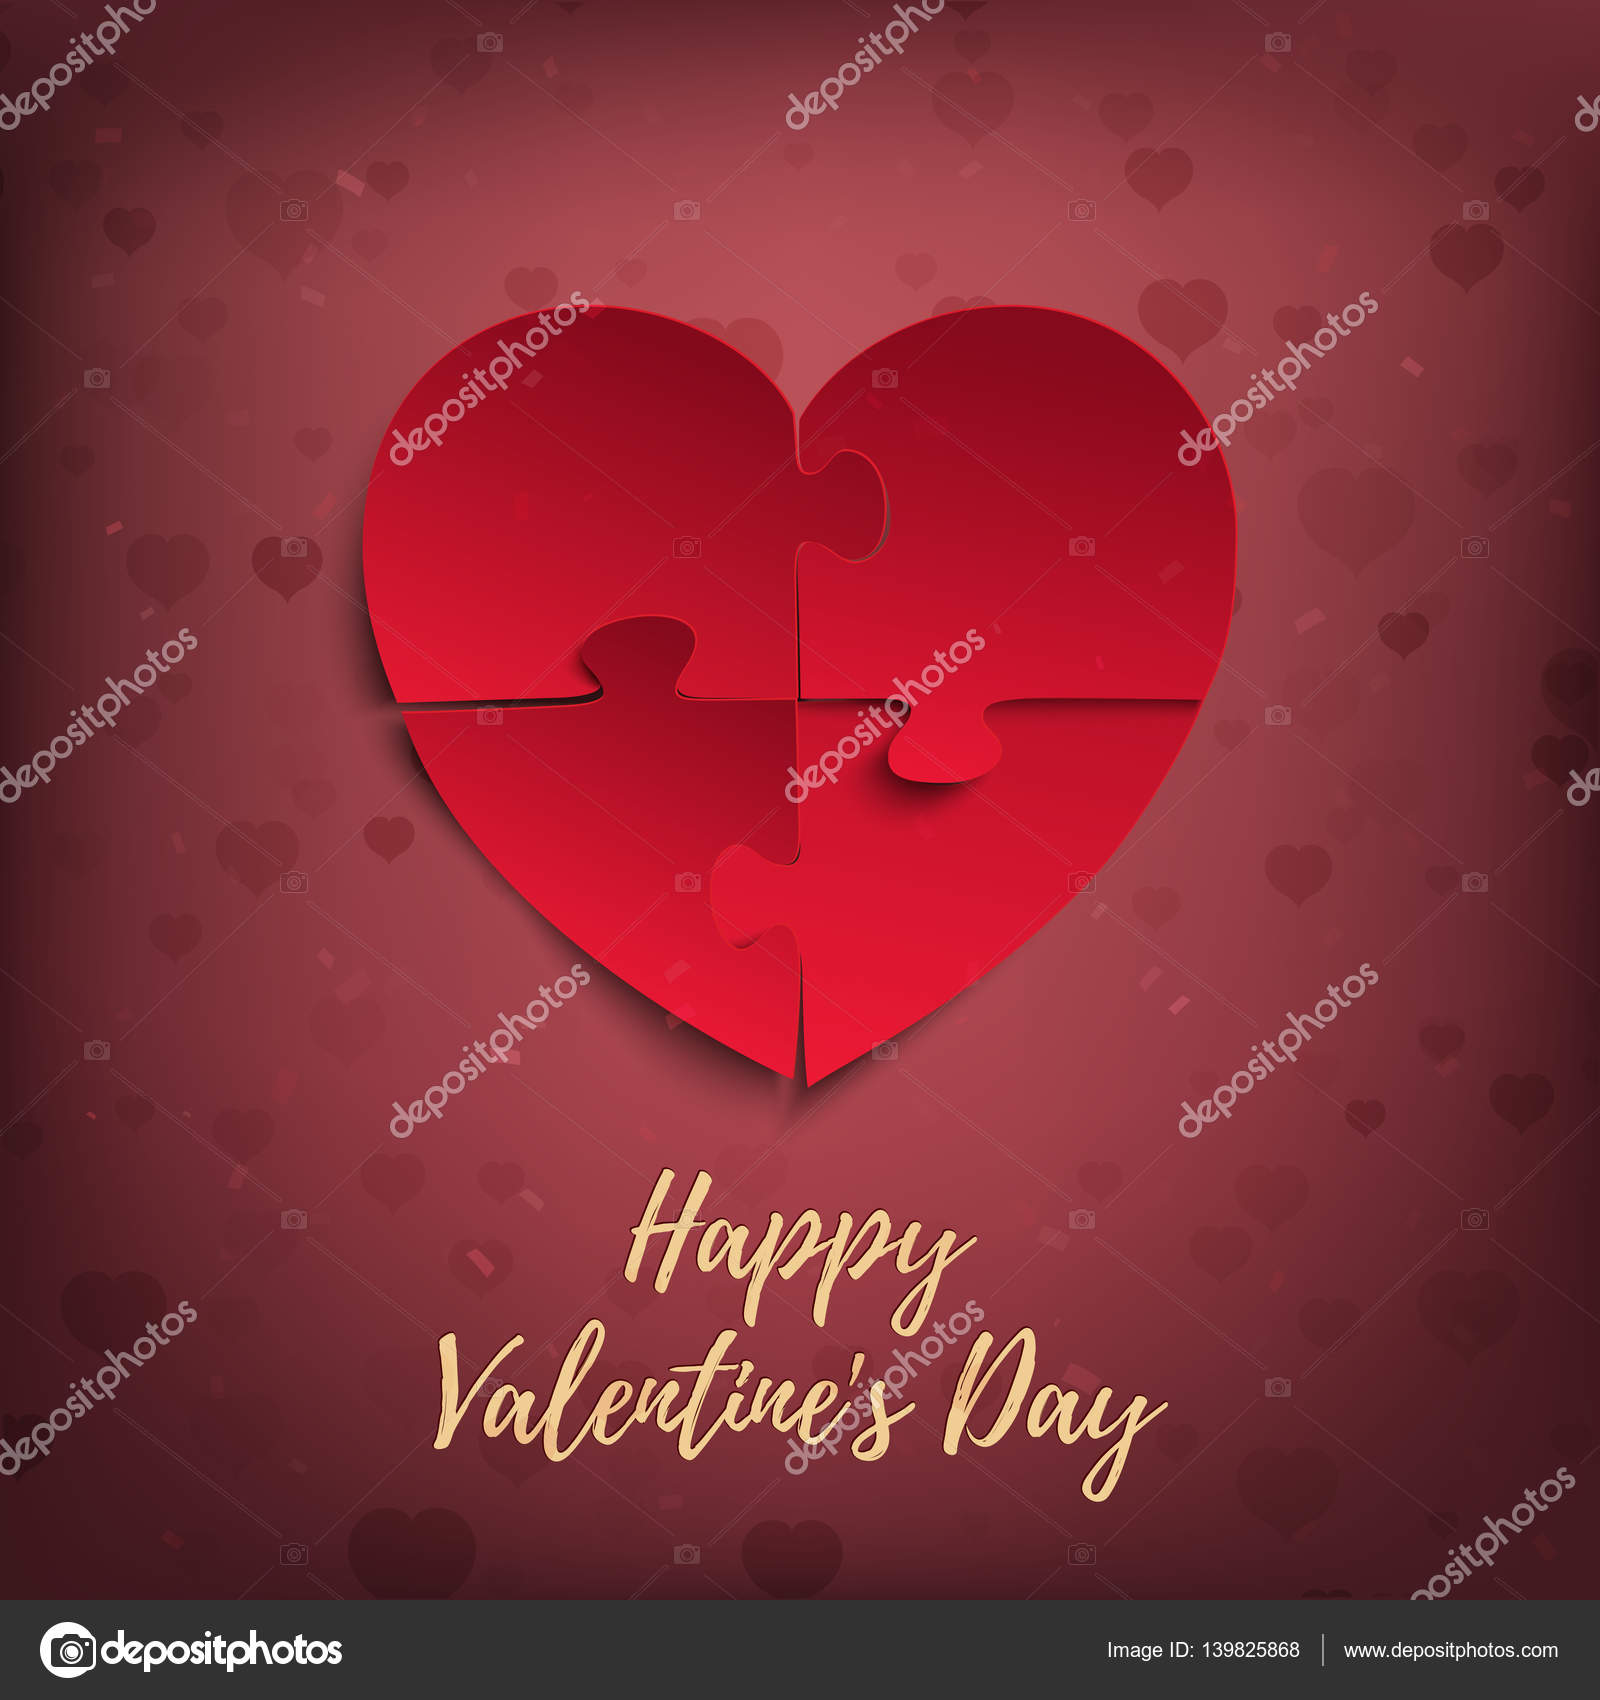 Happy Valentines Day Greeting Card Template Stock Vector